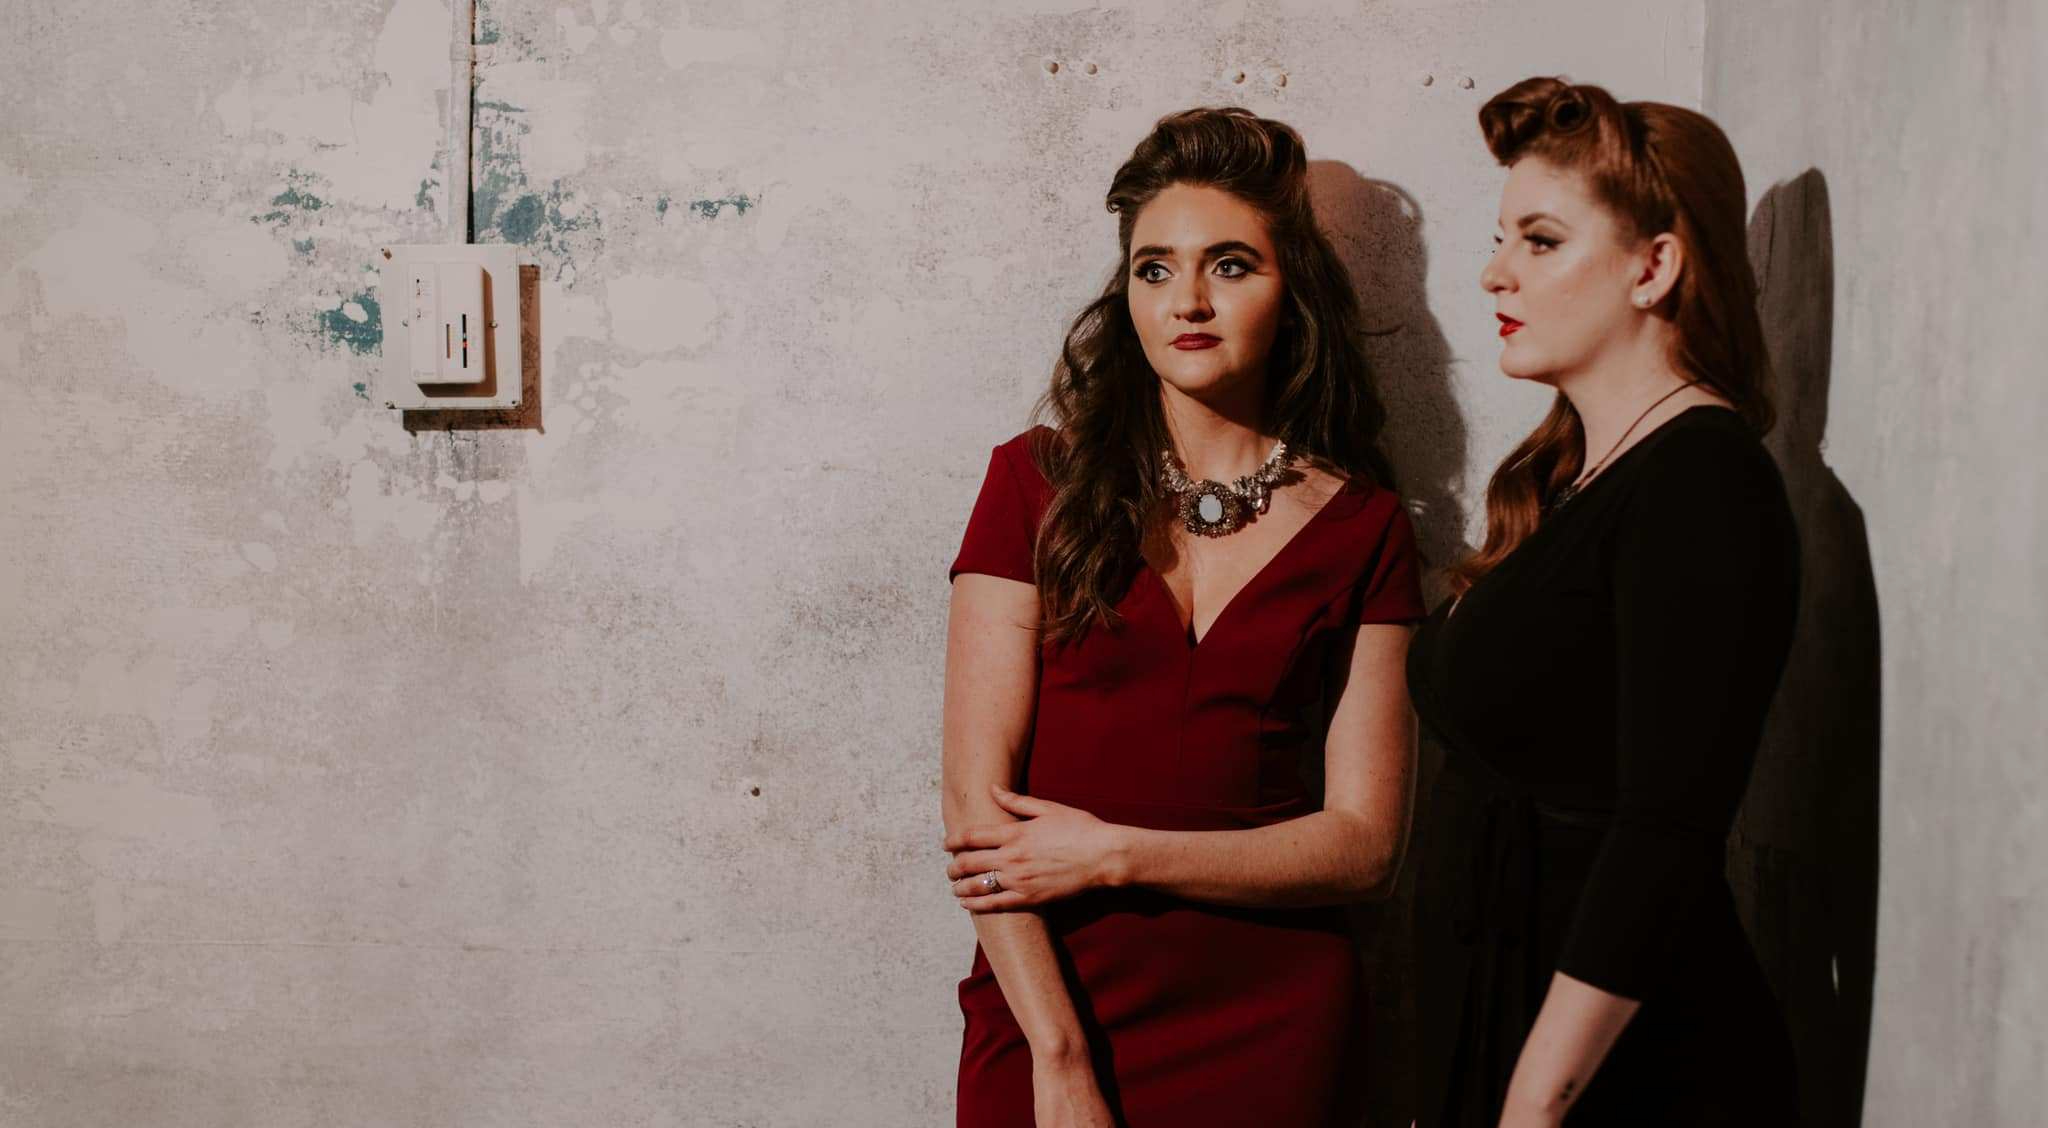 Hard-working duo CALAMITY JANE deliver another clean, clear, country-infused pop hit in GIVE IT ALL AWAY